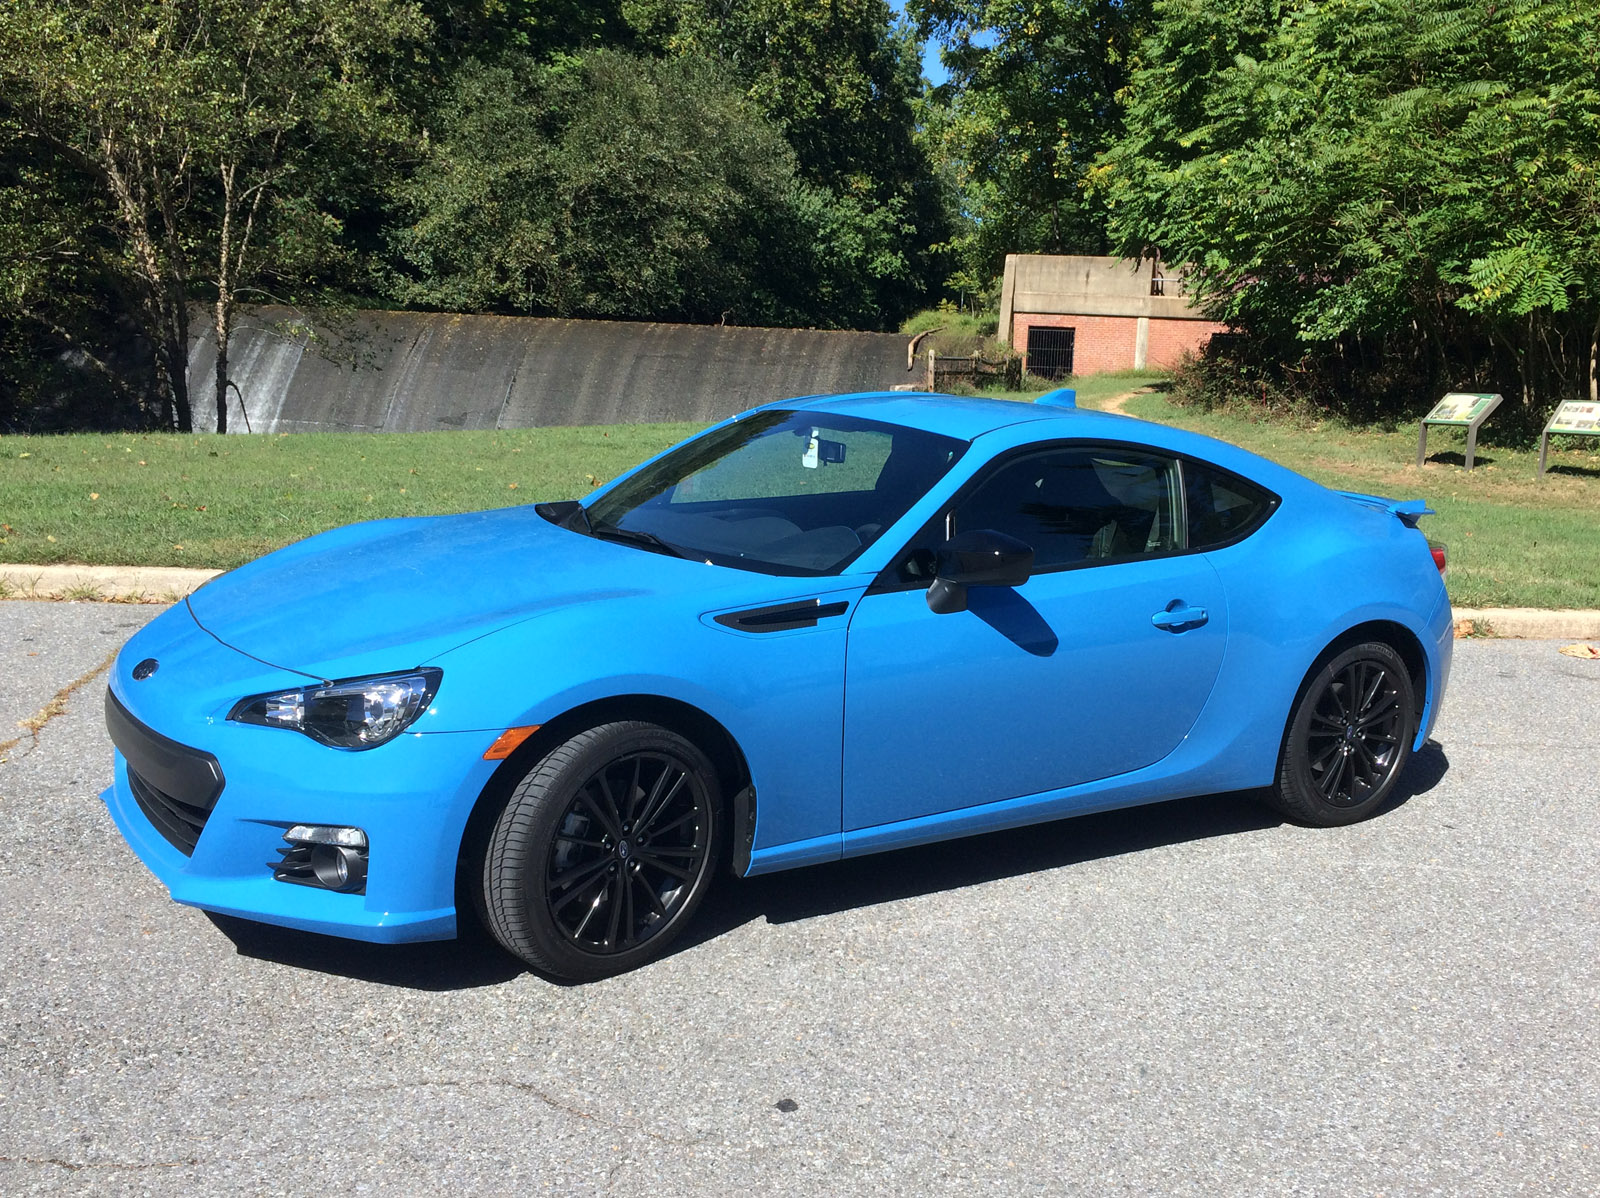 Subaru BRZ Series.HyperBlue: A colorful, small, fun-to-drive car under $30K